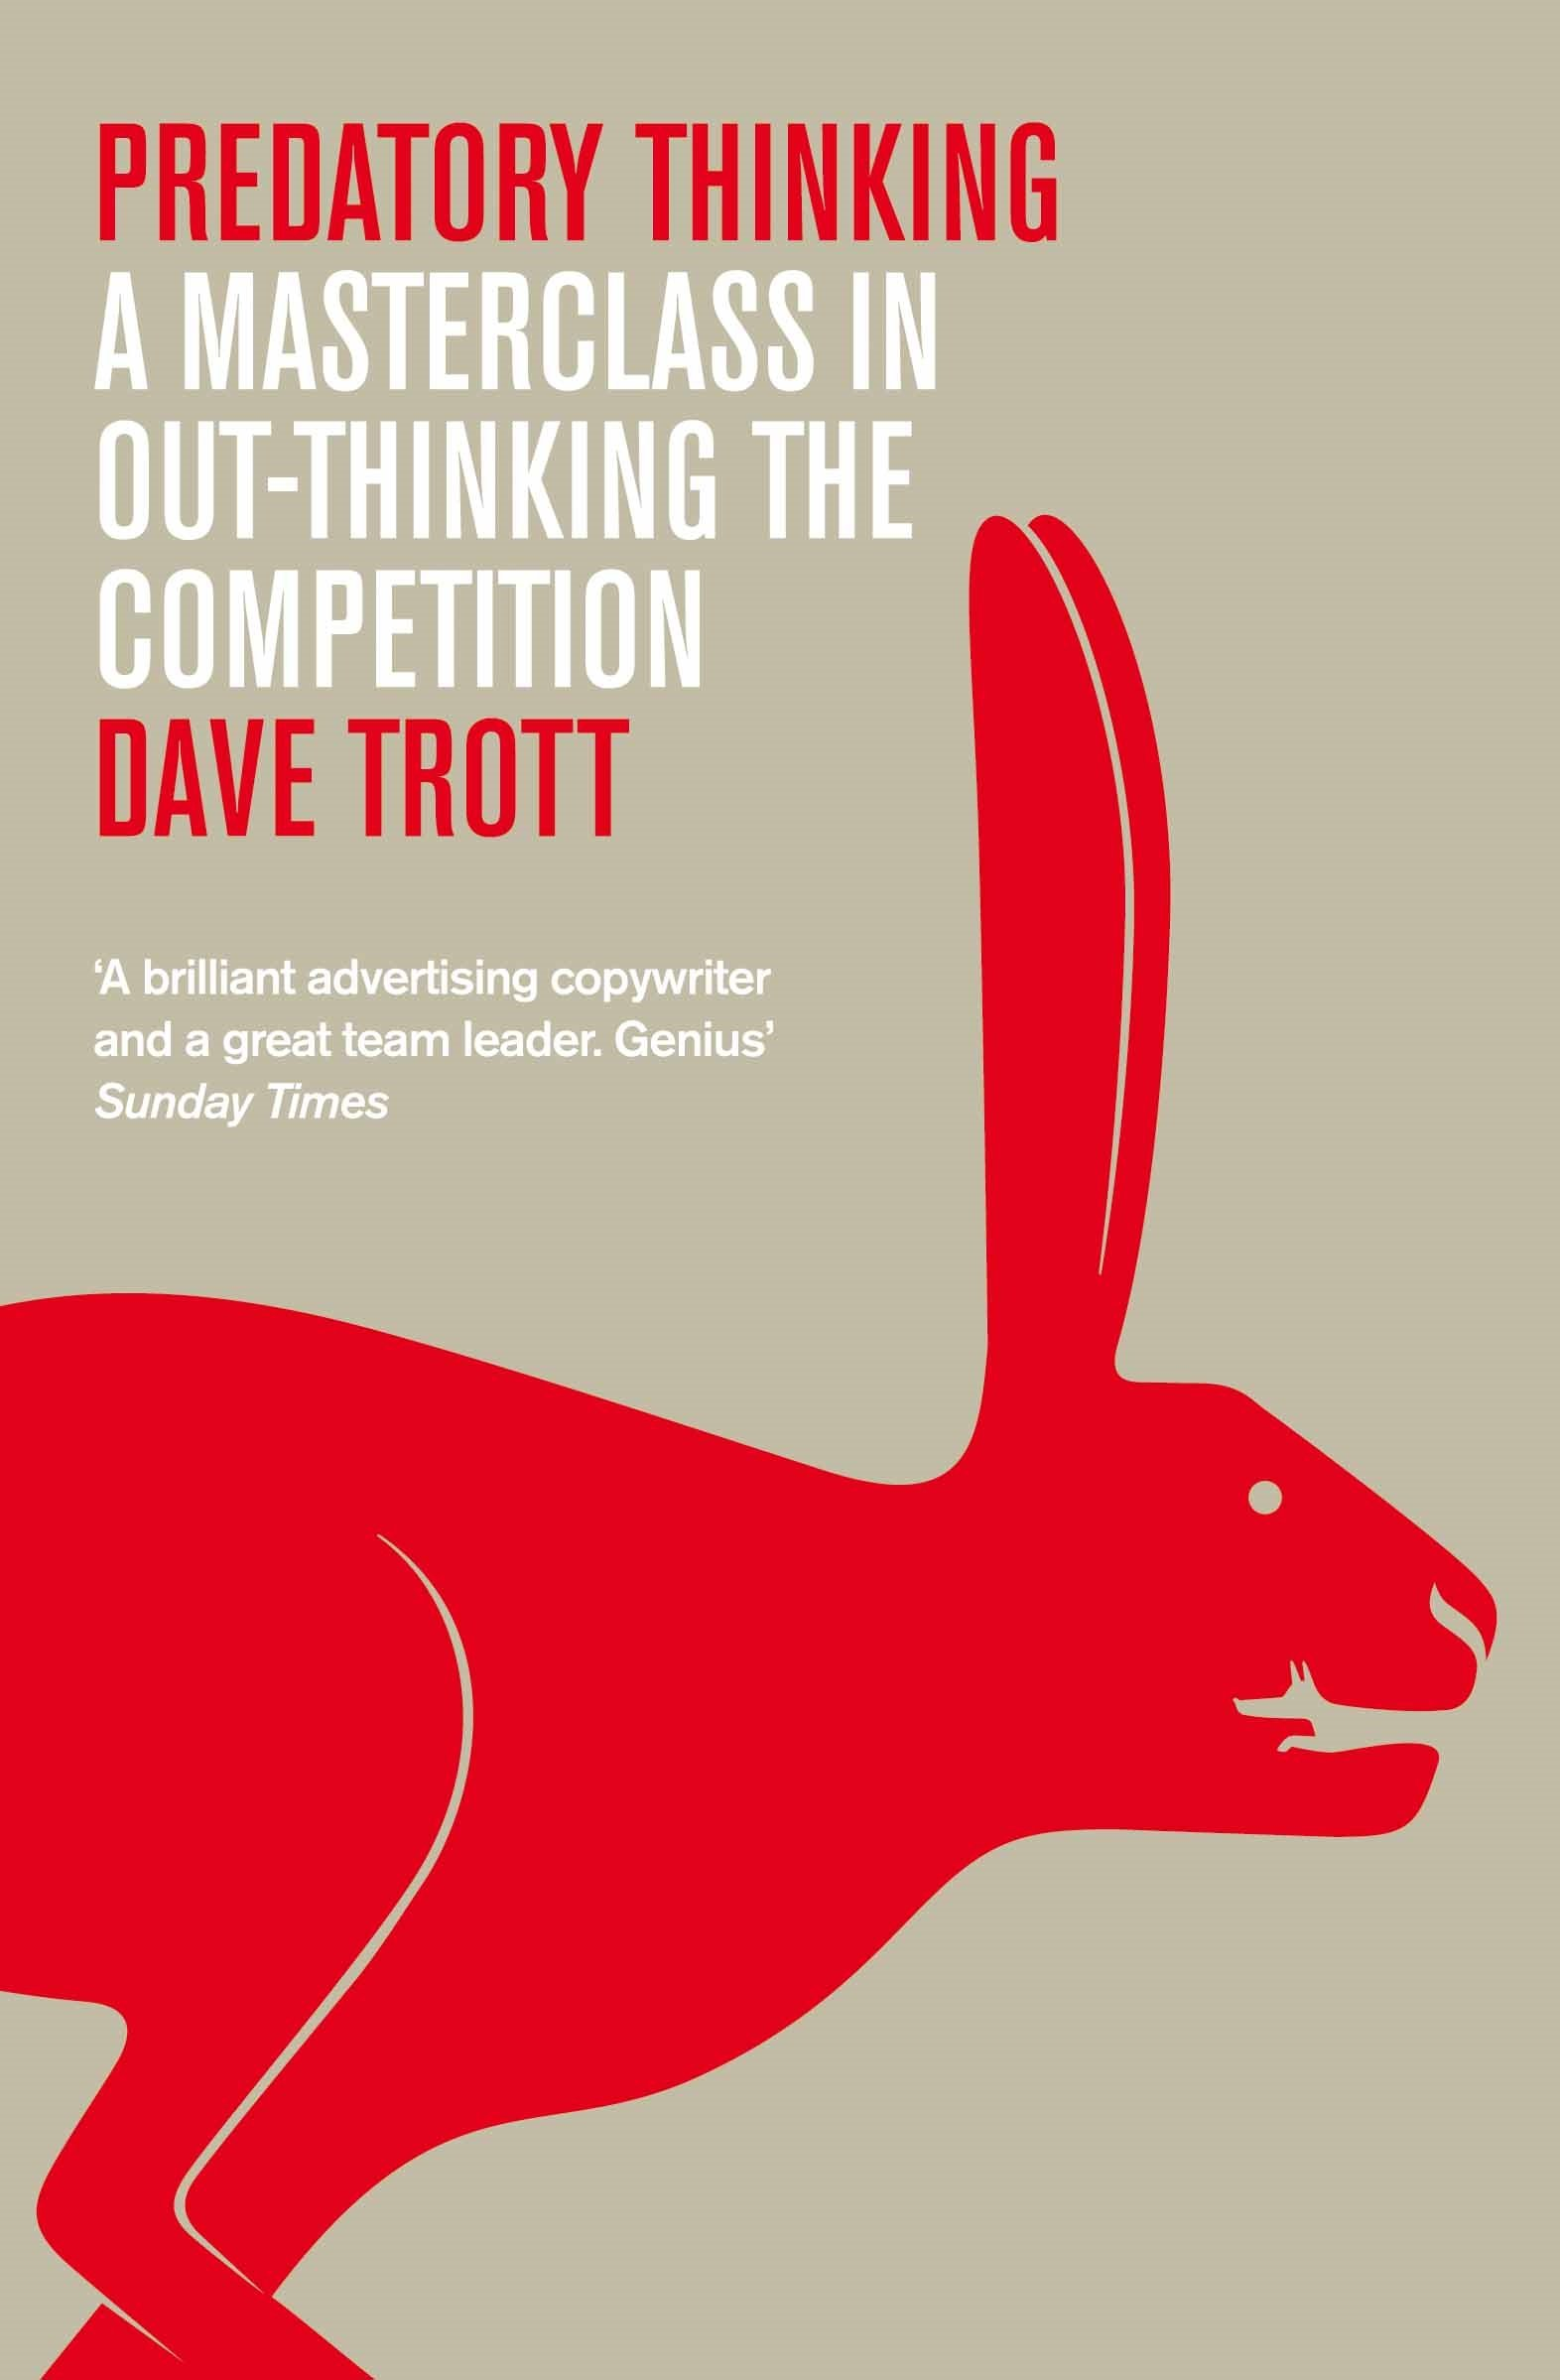 Download Predatory Thinking: A Masterclass in Out-Thinking the Competition PDF ePub book